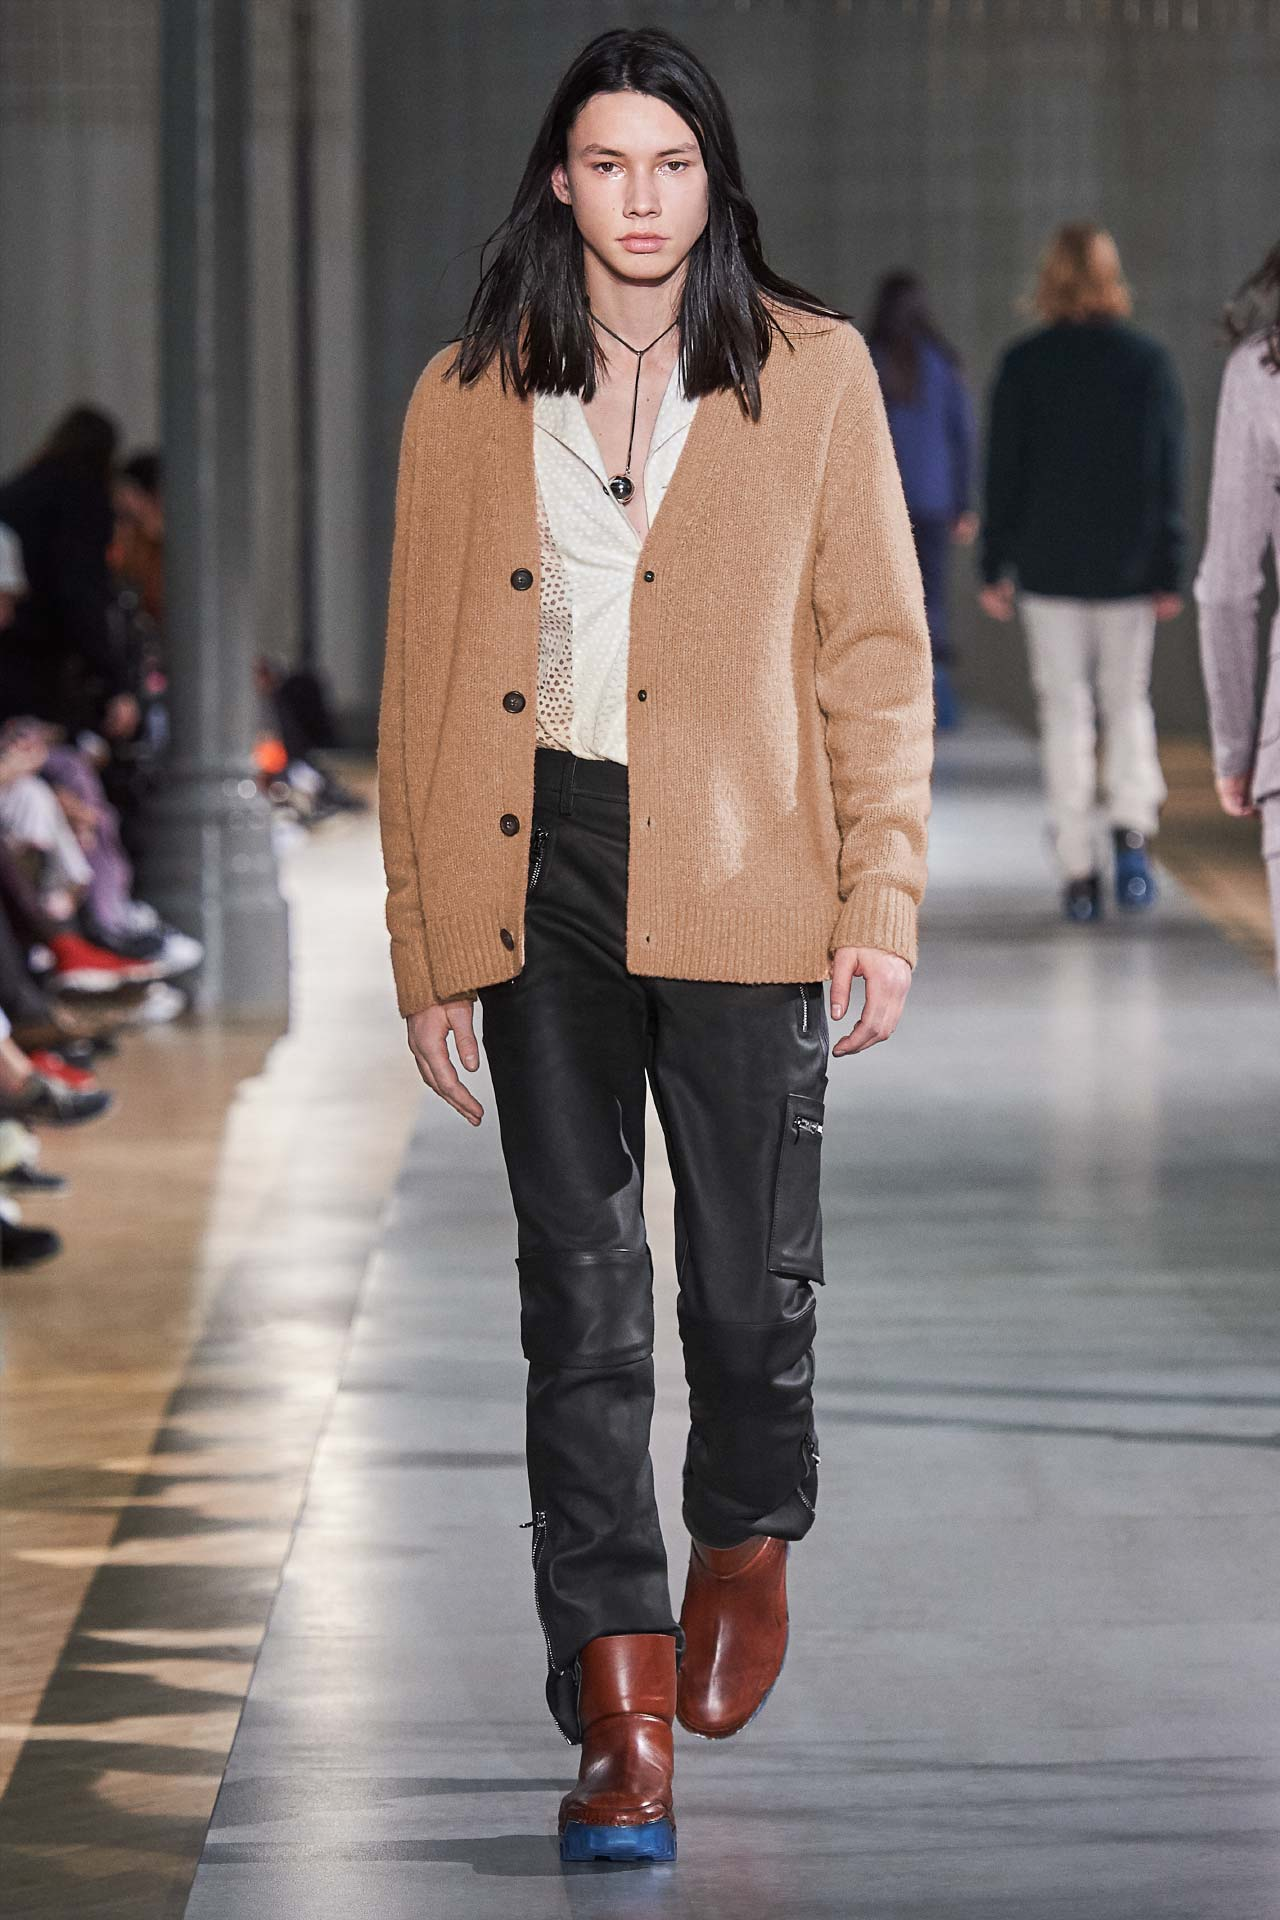 Look Fall/Winter 2019, image 22